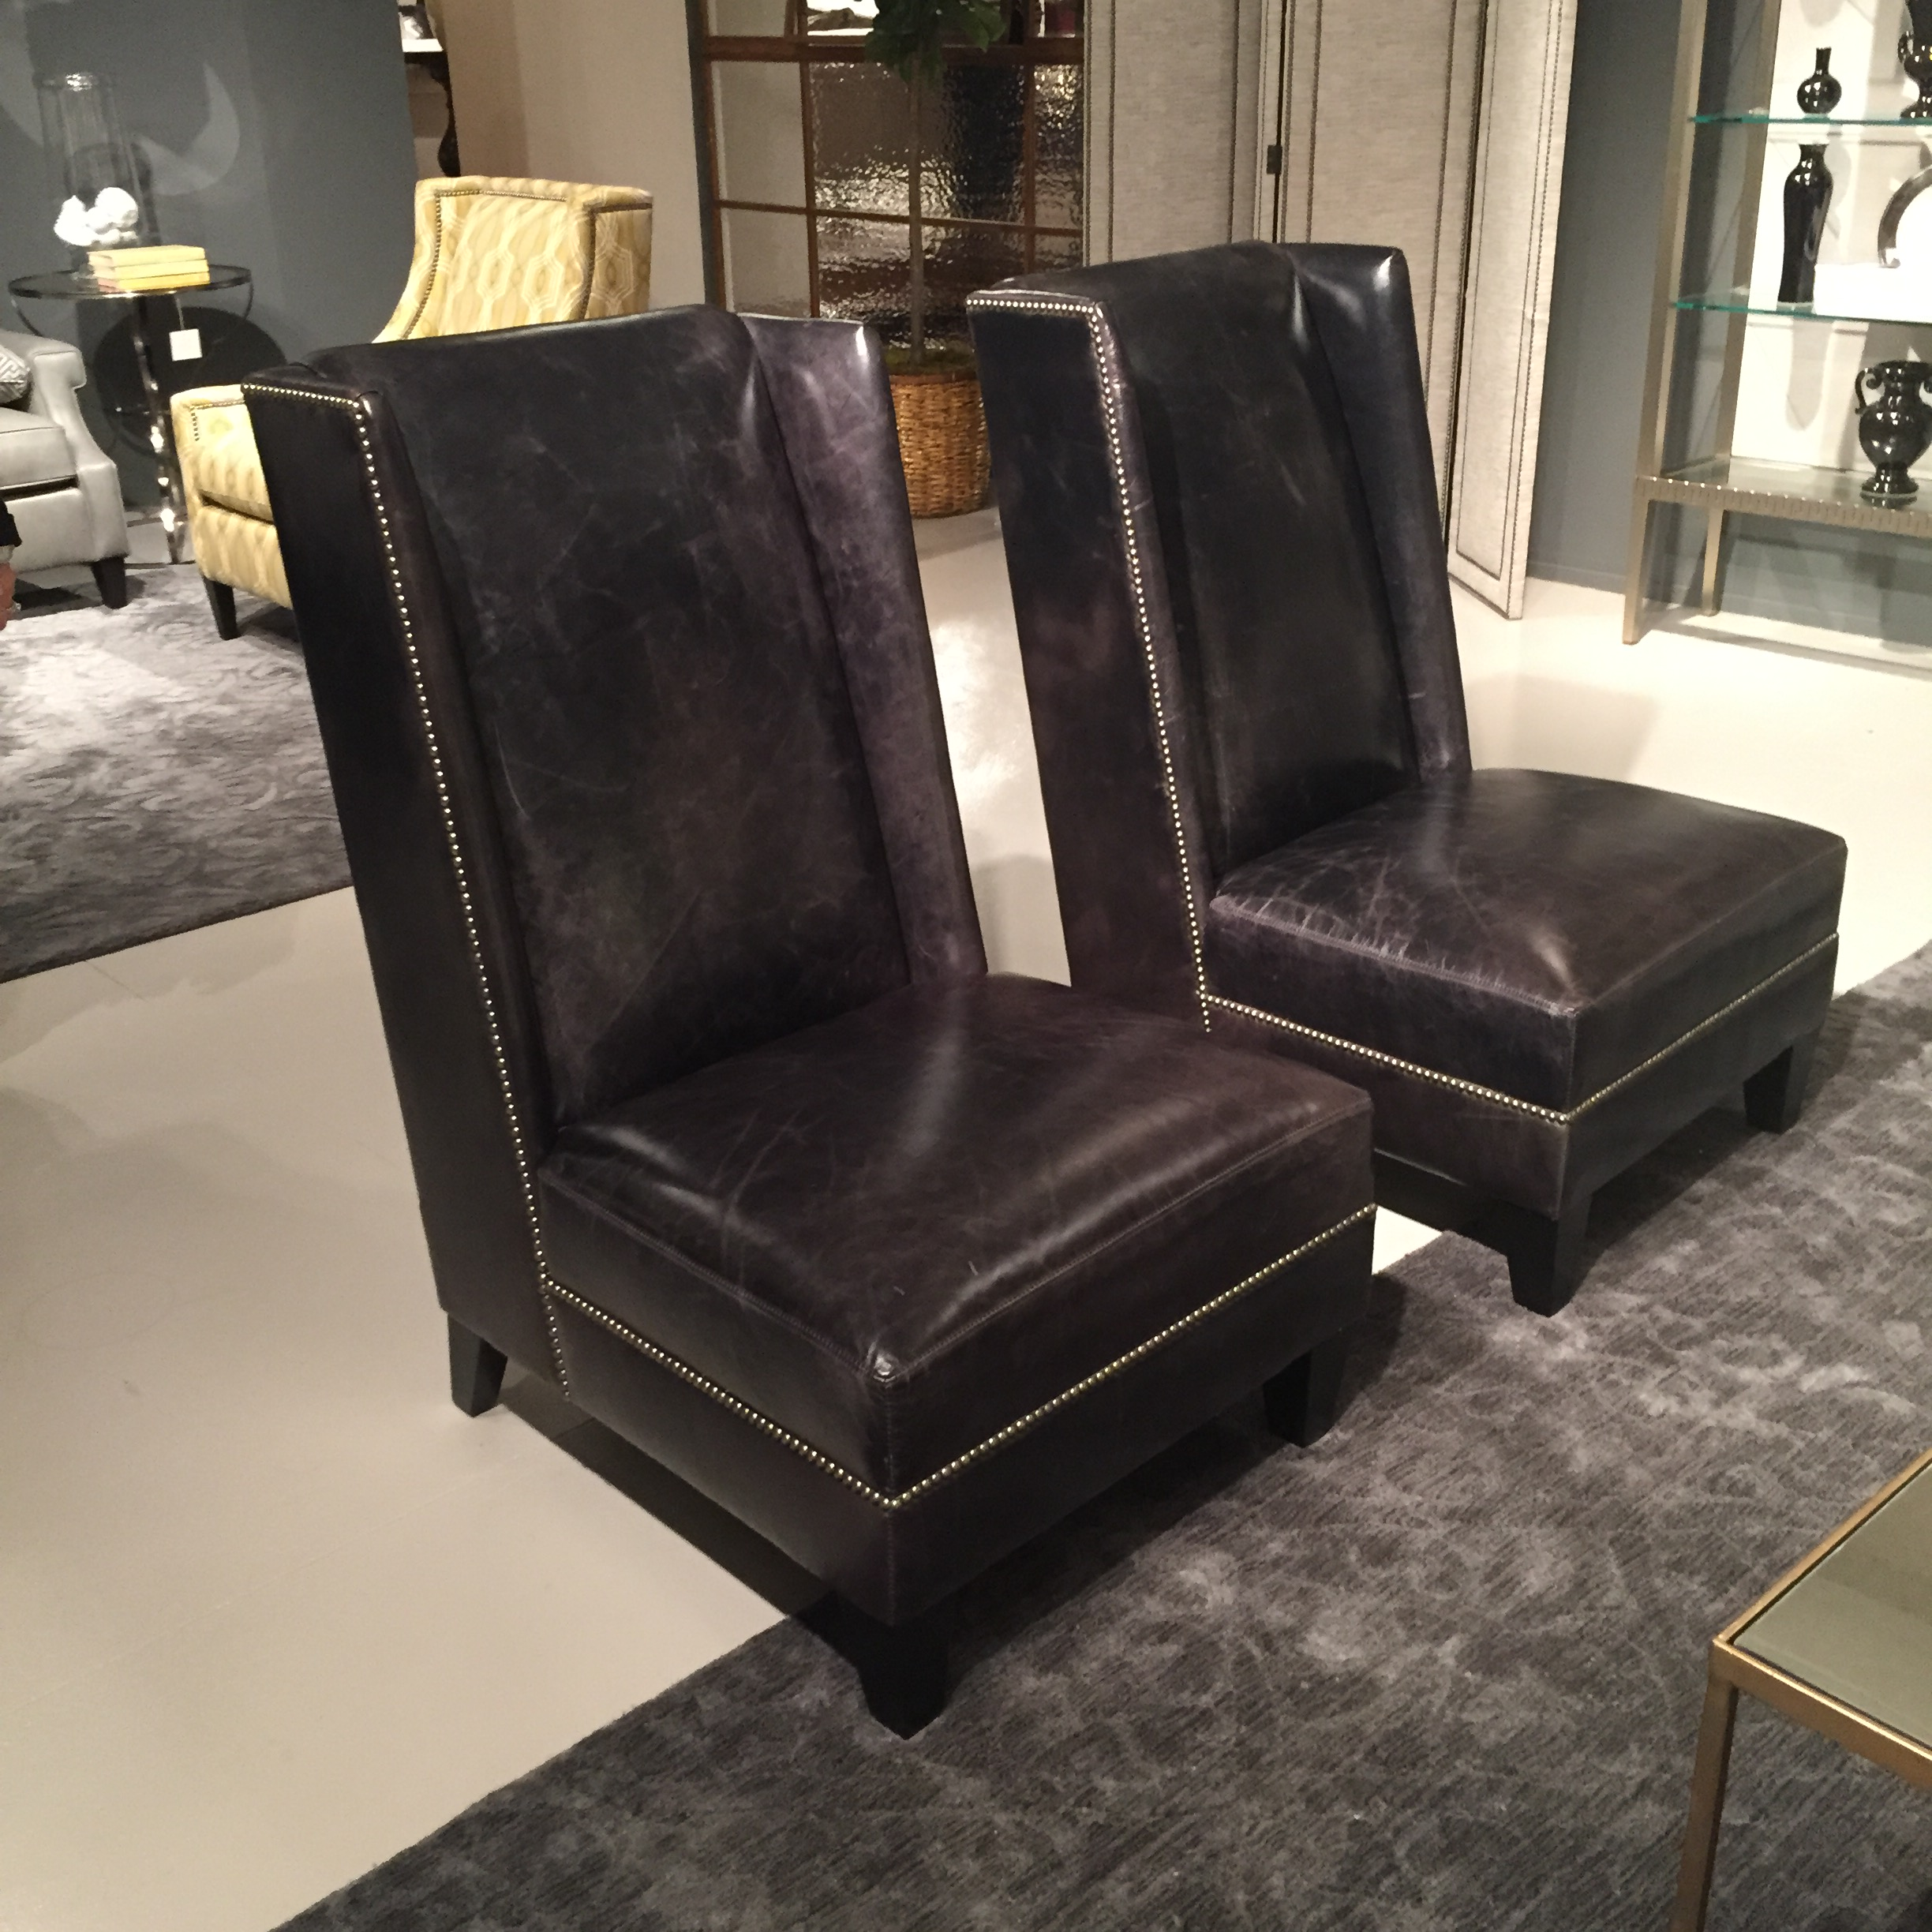 Bernhardt Leather Chair Modern Glamour With Bernhardt Furniture Catherine M